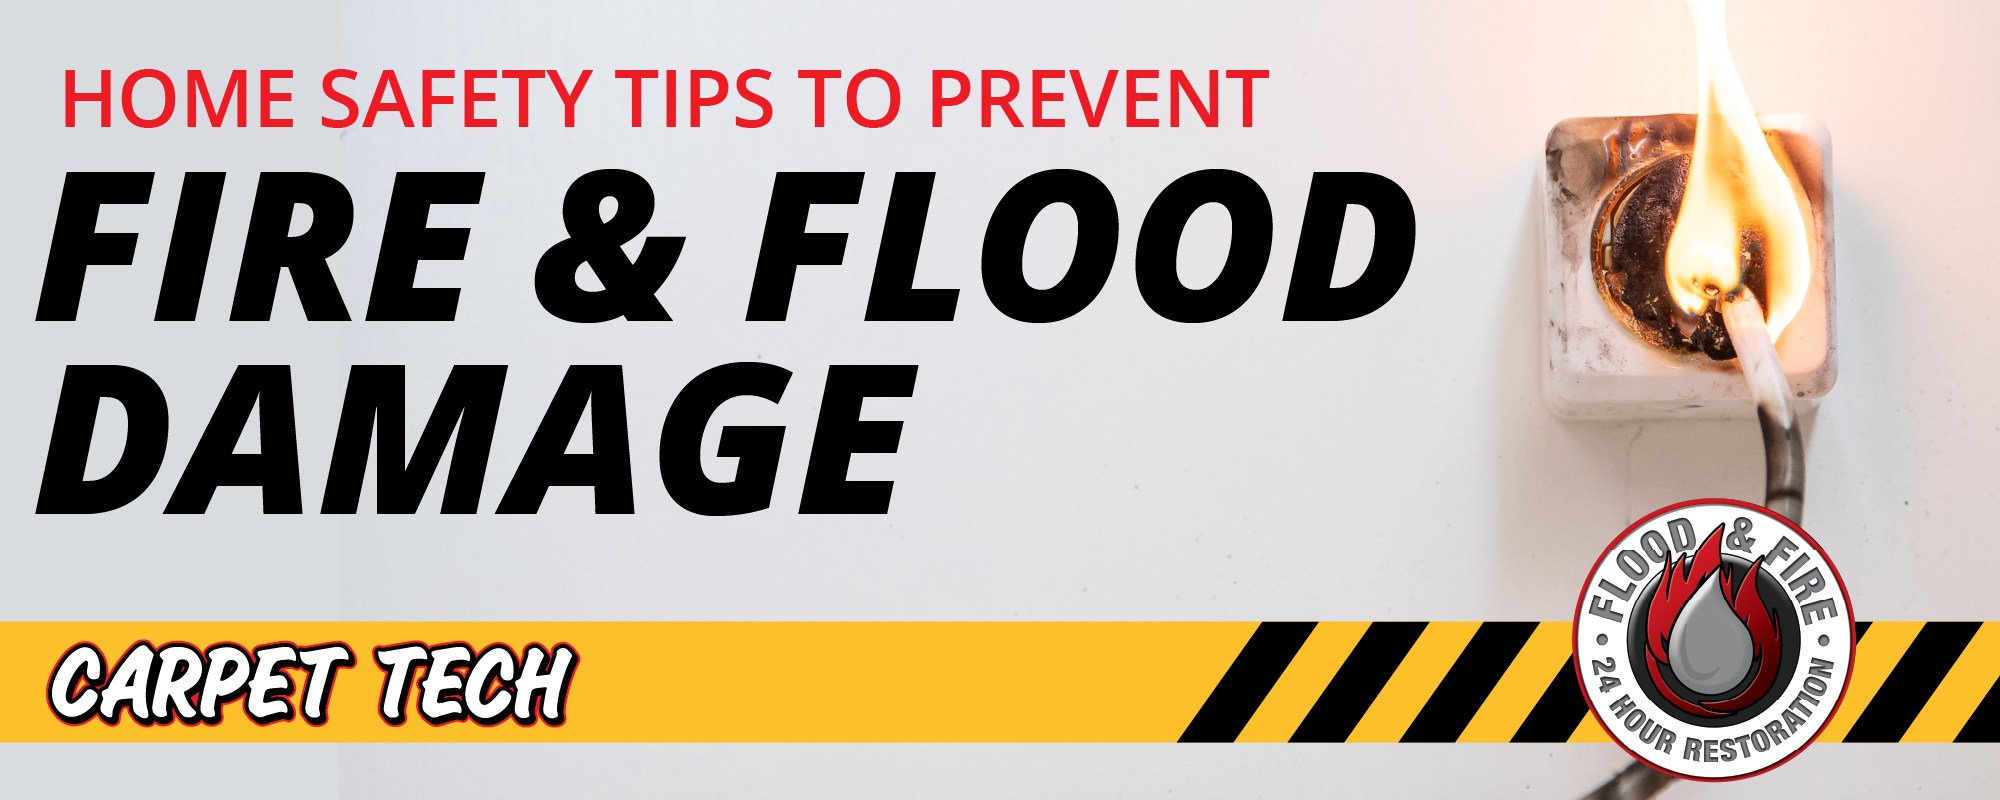 Home Safety Tips to Prevent Fire and Flood Damage